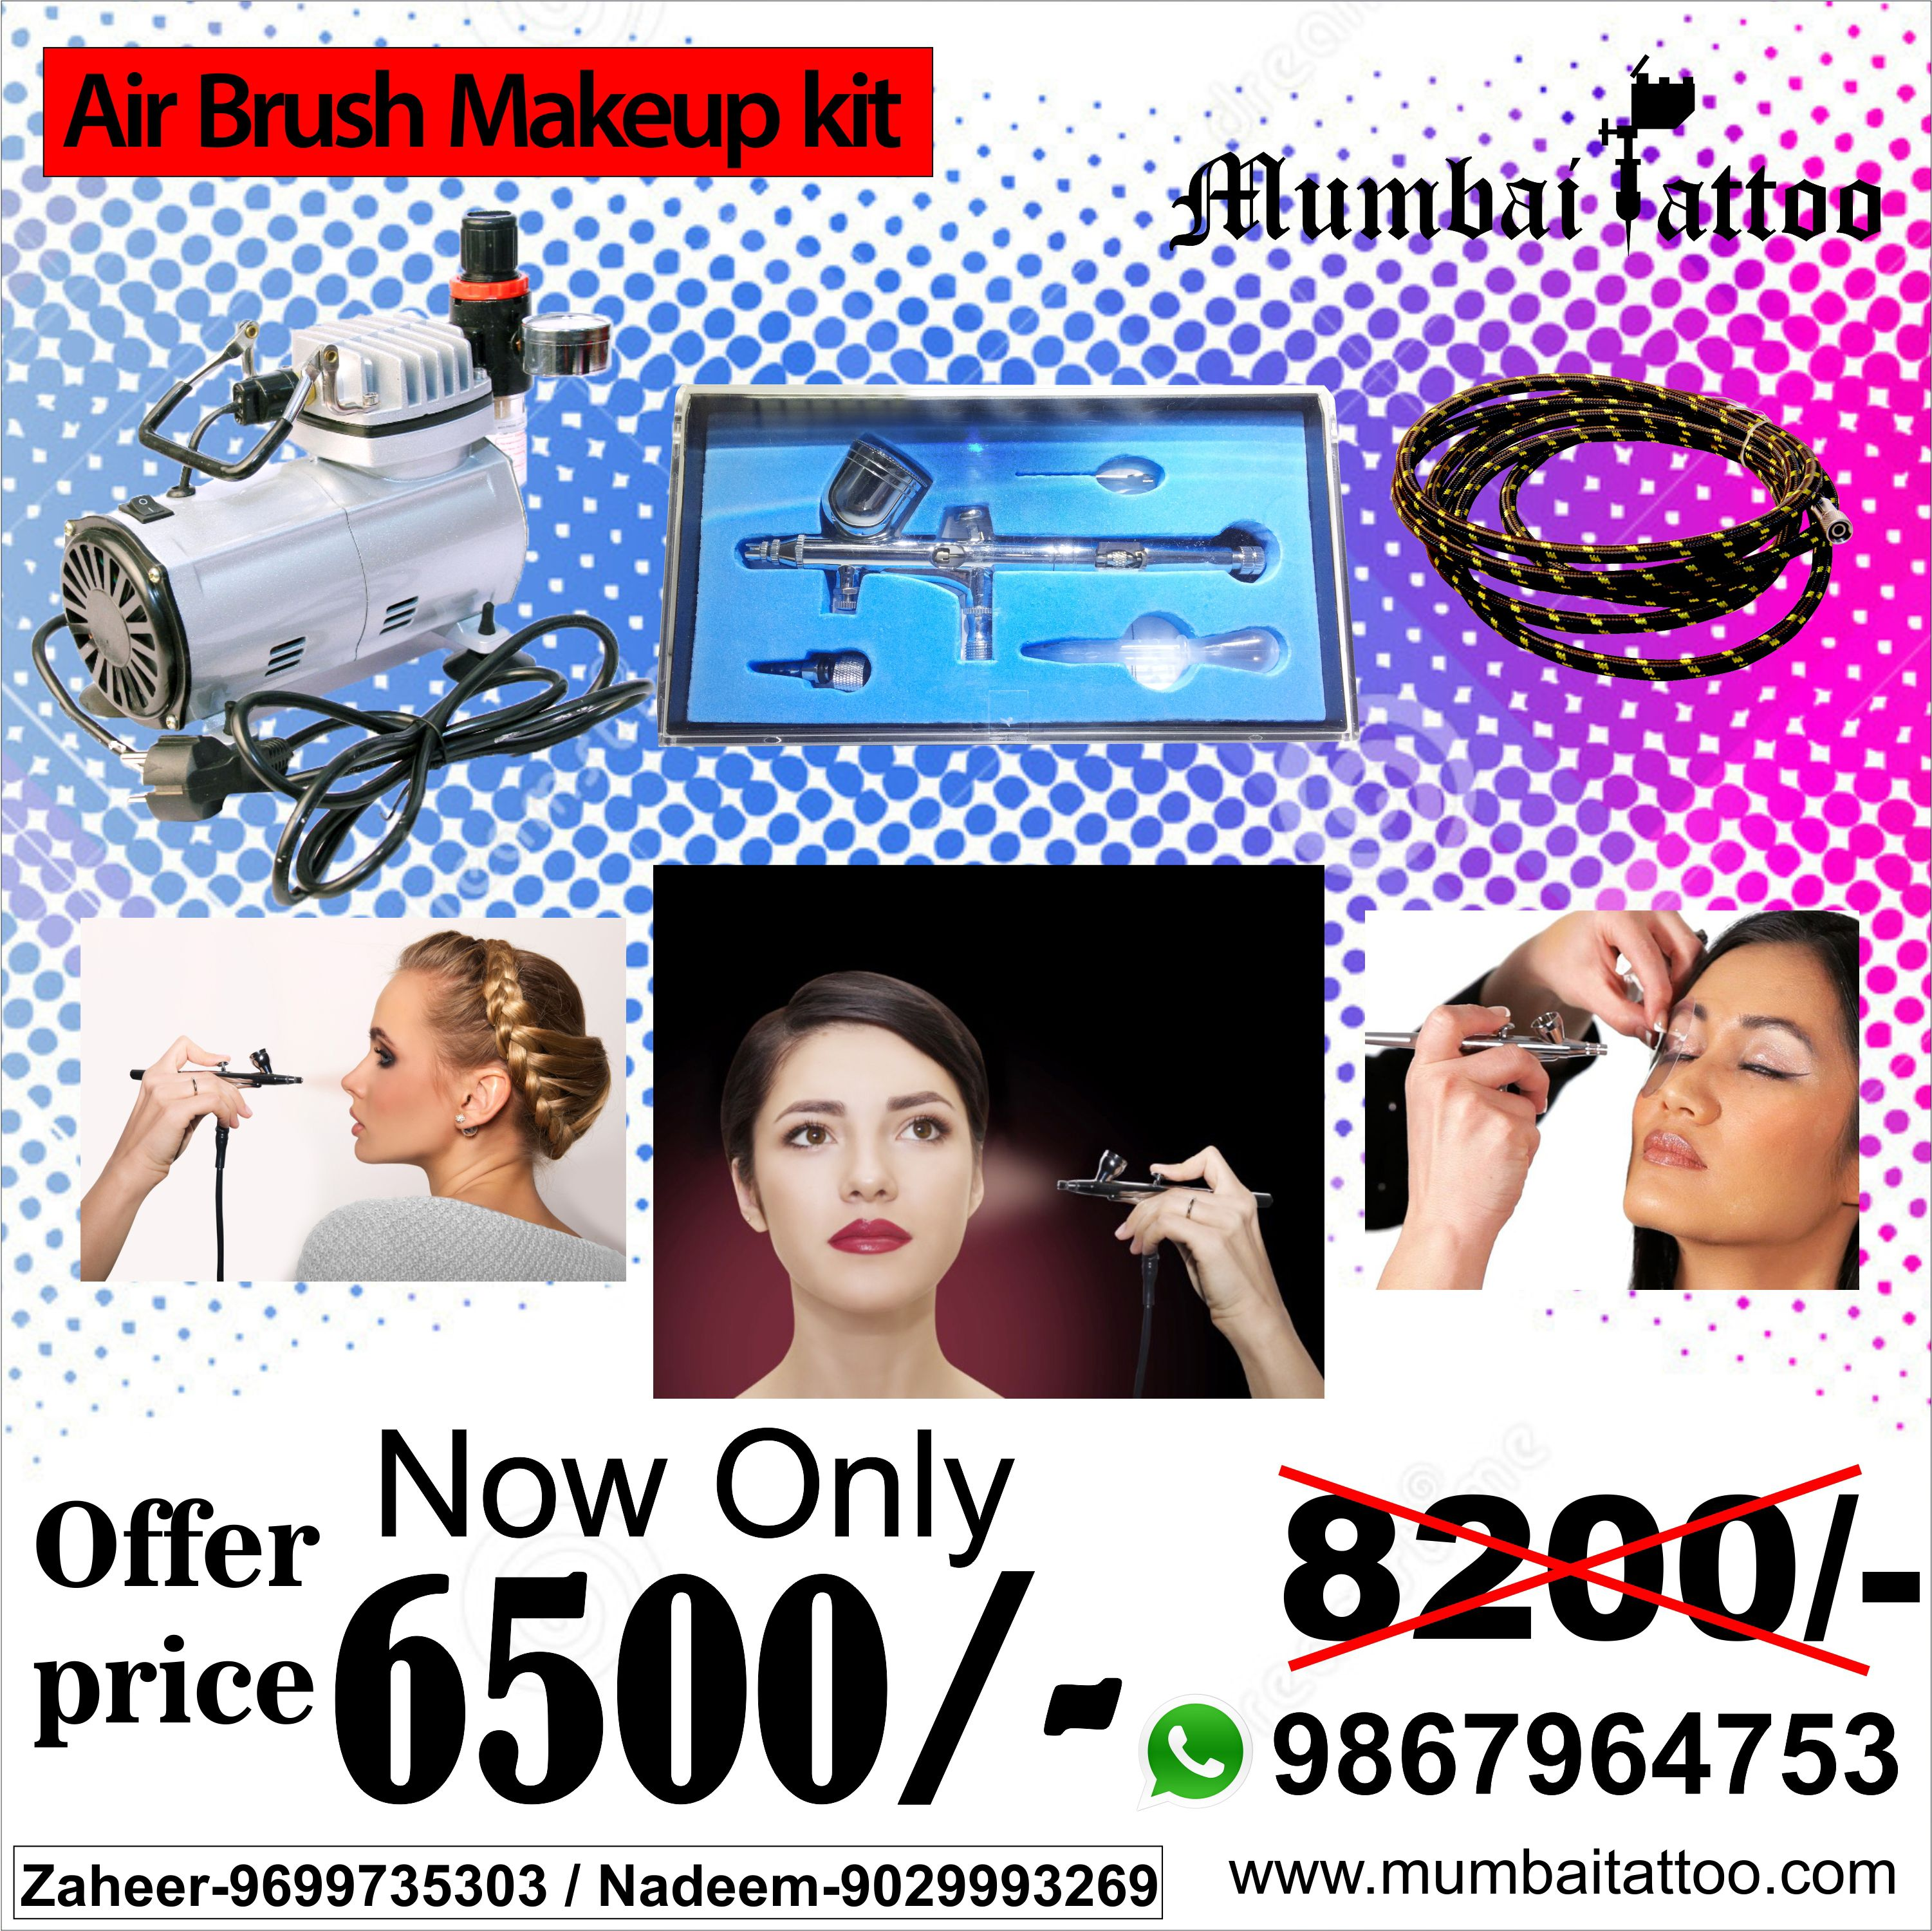 Airbrush makeup kit for more detail about tattoo prodict